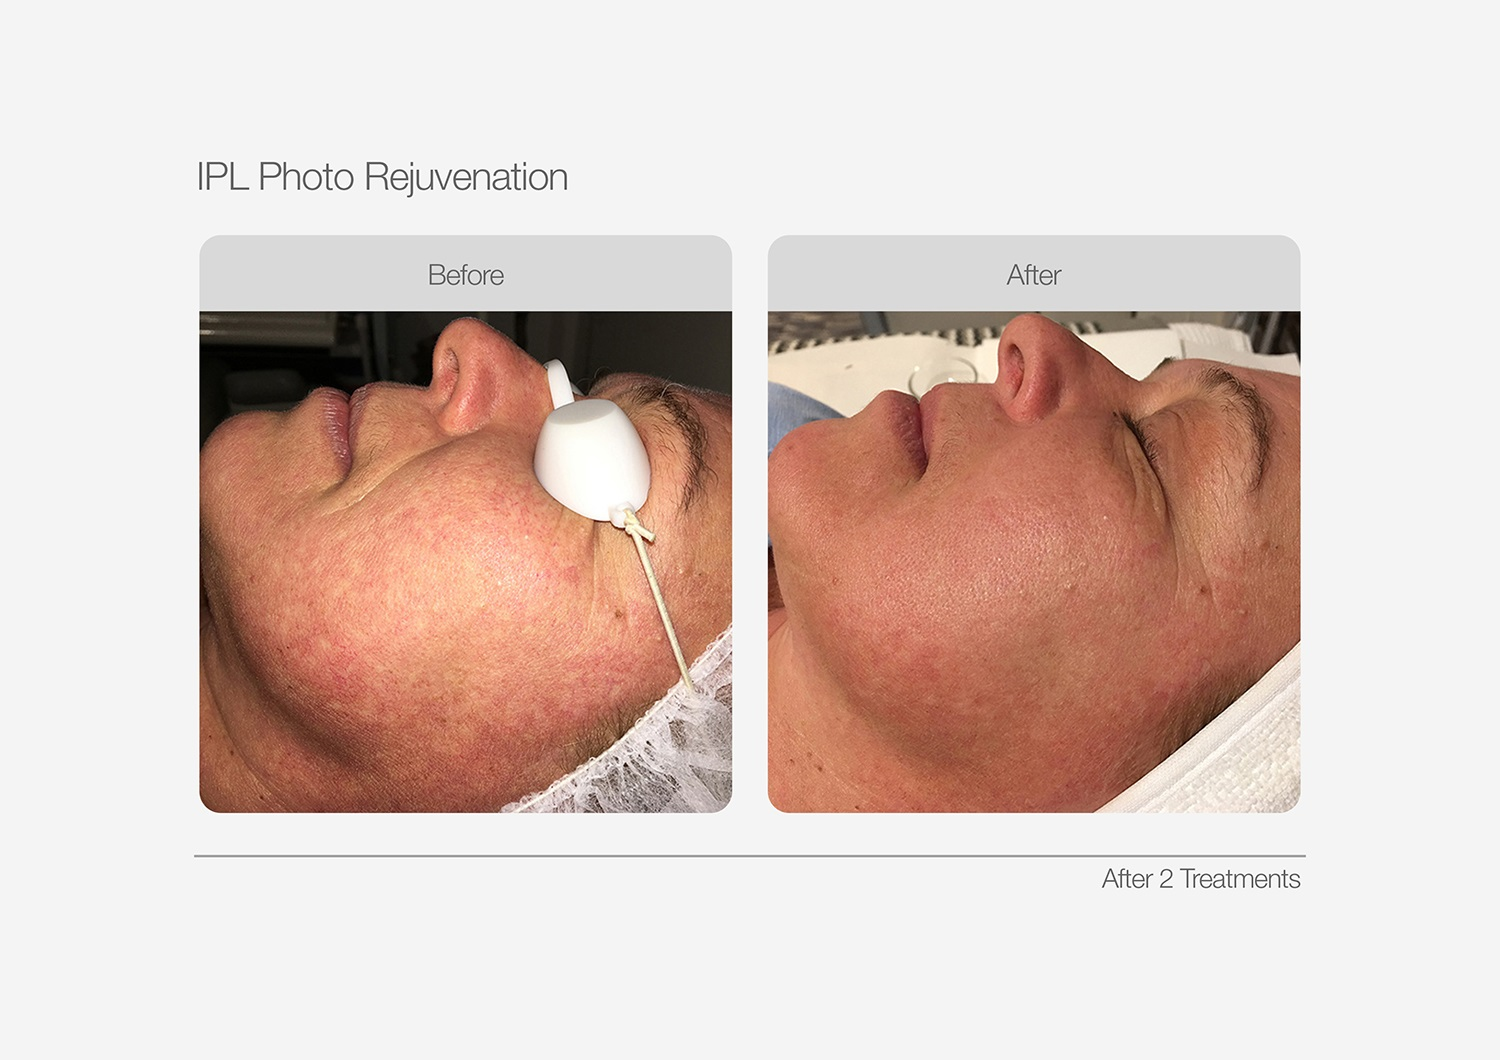 IPL-Photo-Rejuvenation-Before-After-02